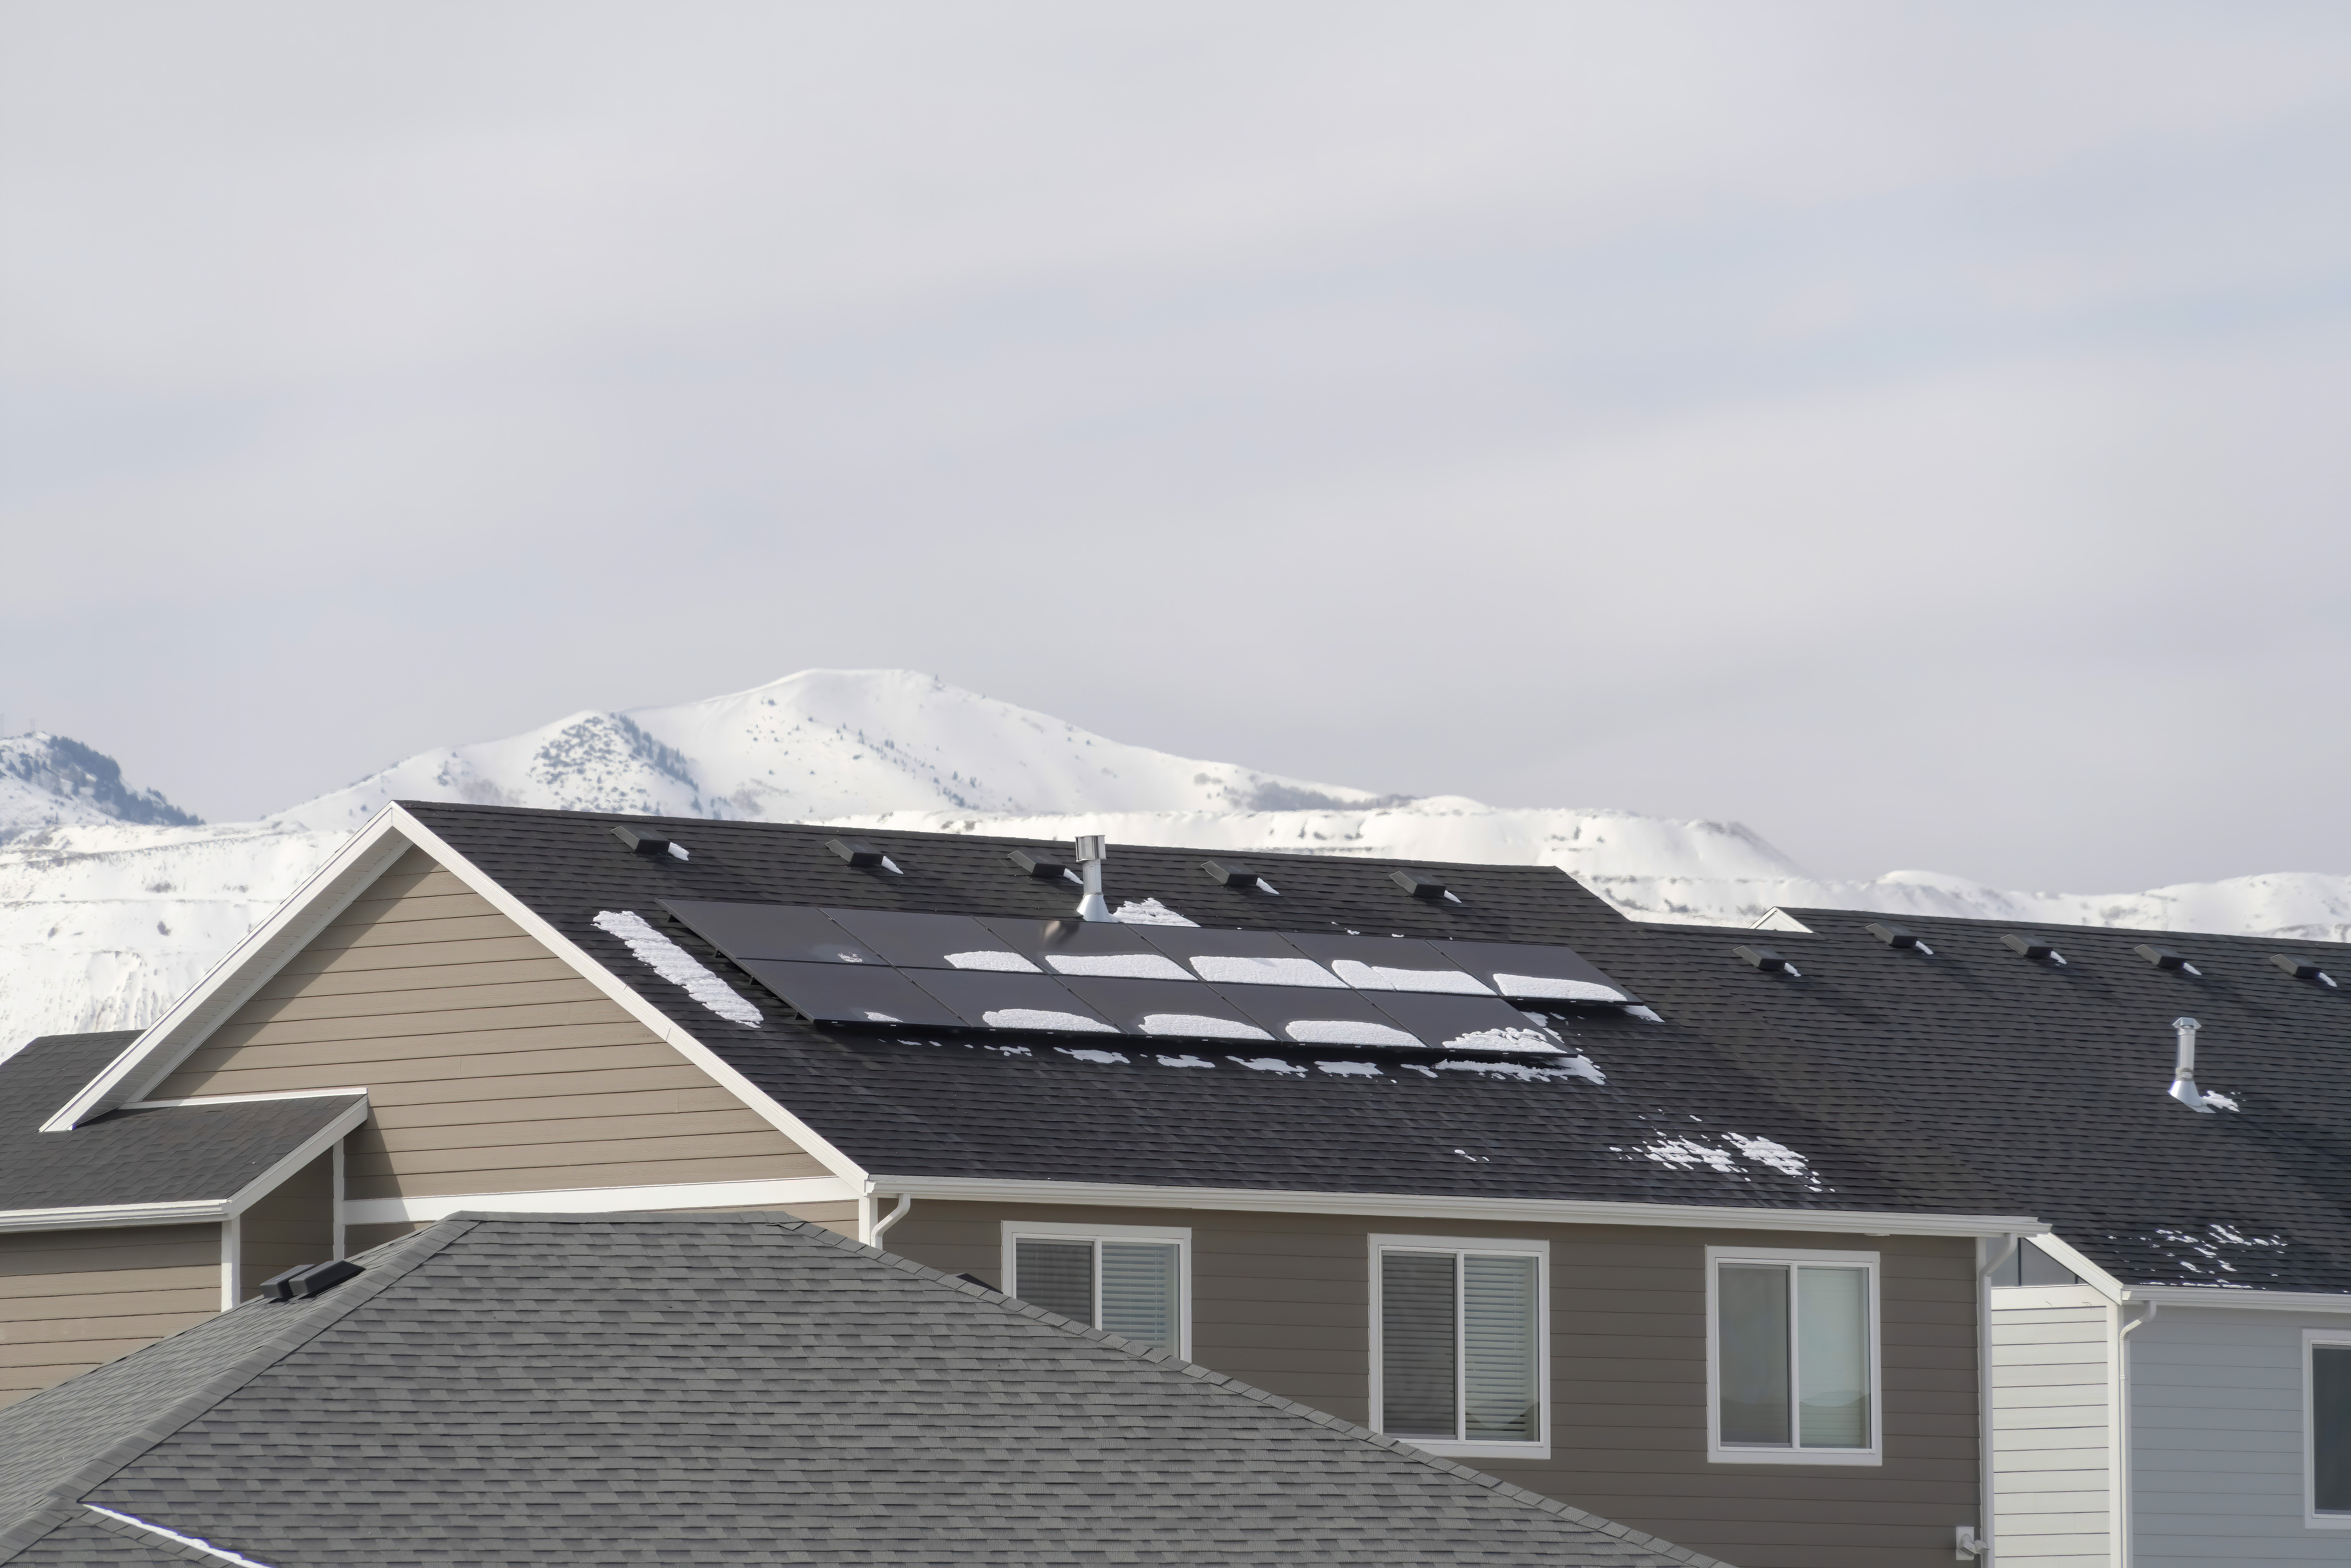 Exterior of homes with solar panels on gray roof against snowy Wasatch Mountain